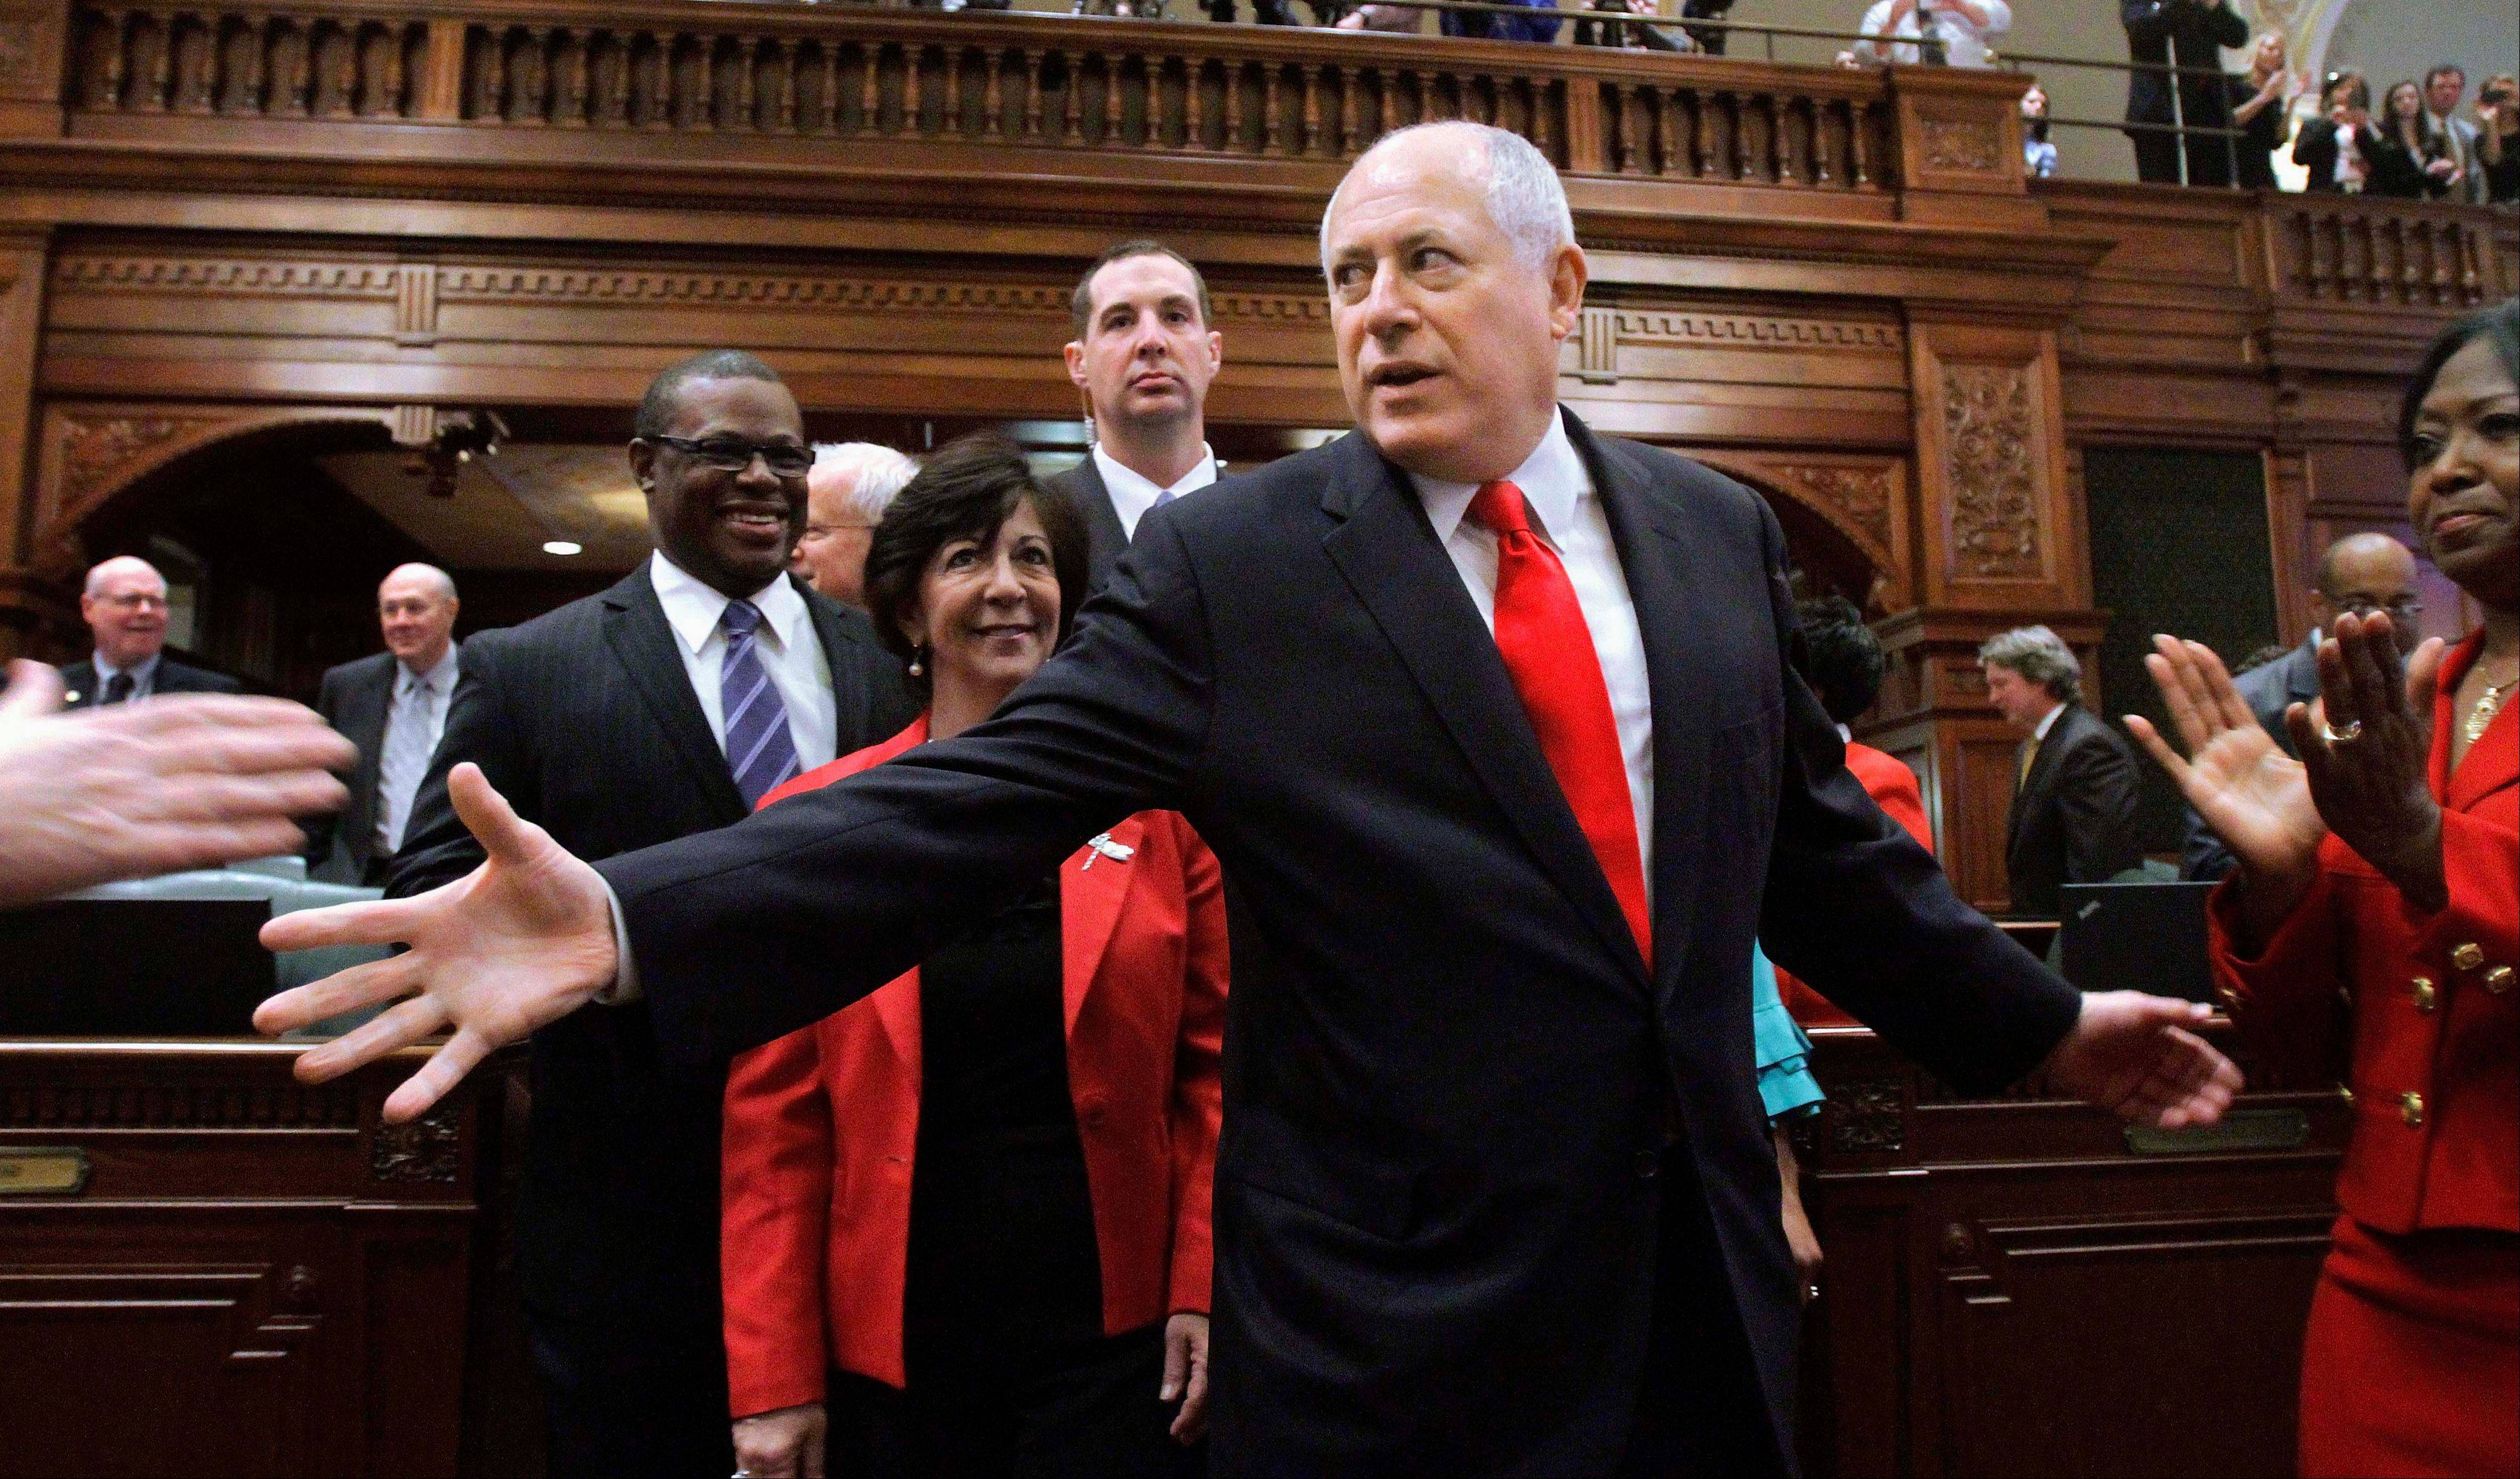 Quinn plans to cut state budget to 2008 levels